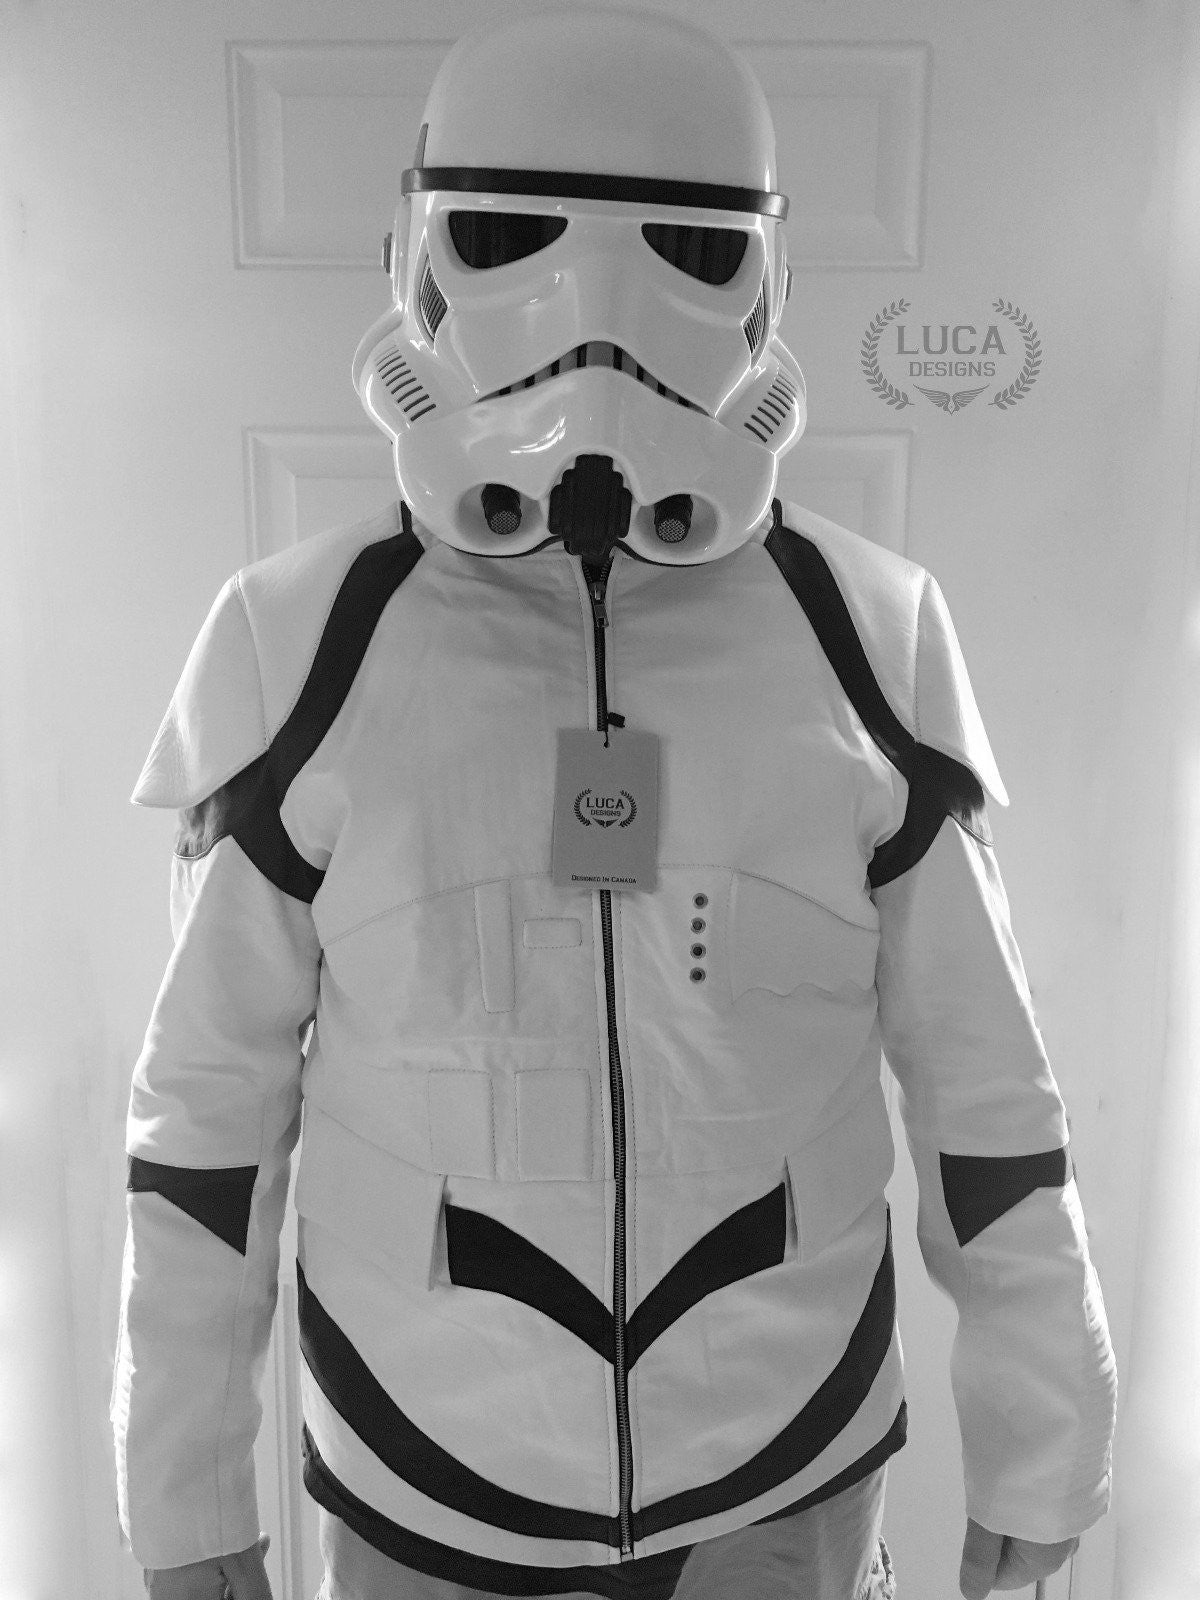 Womens Star Wars Stormtrooper Leather Jacket Armor White